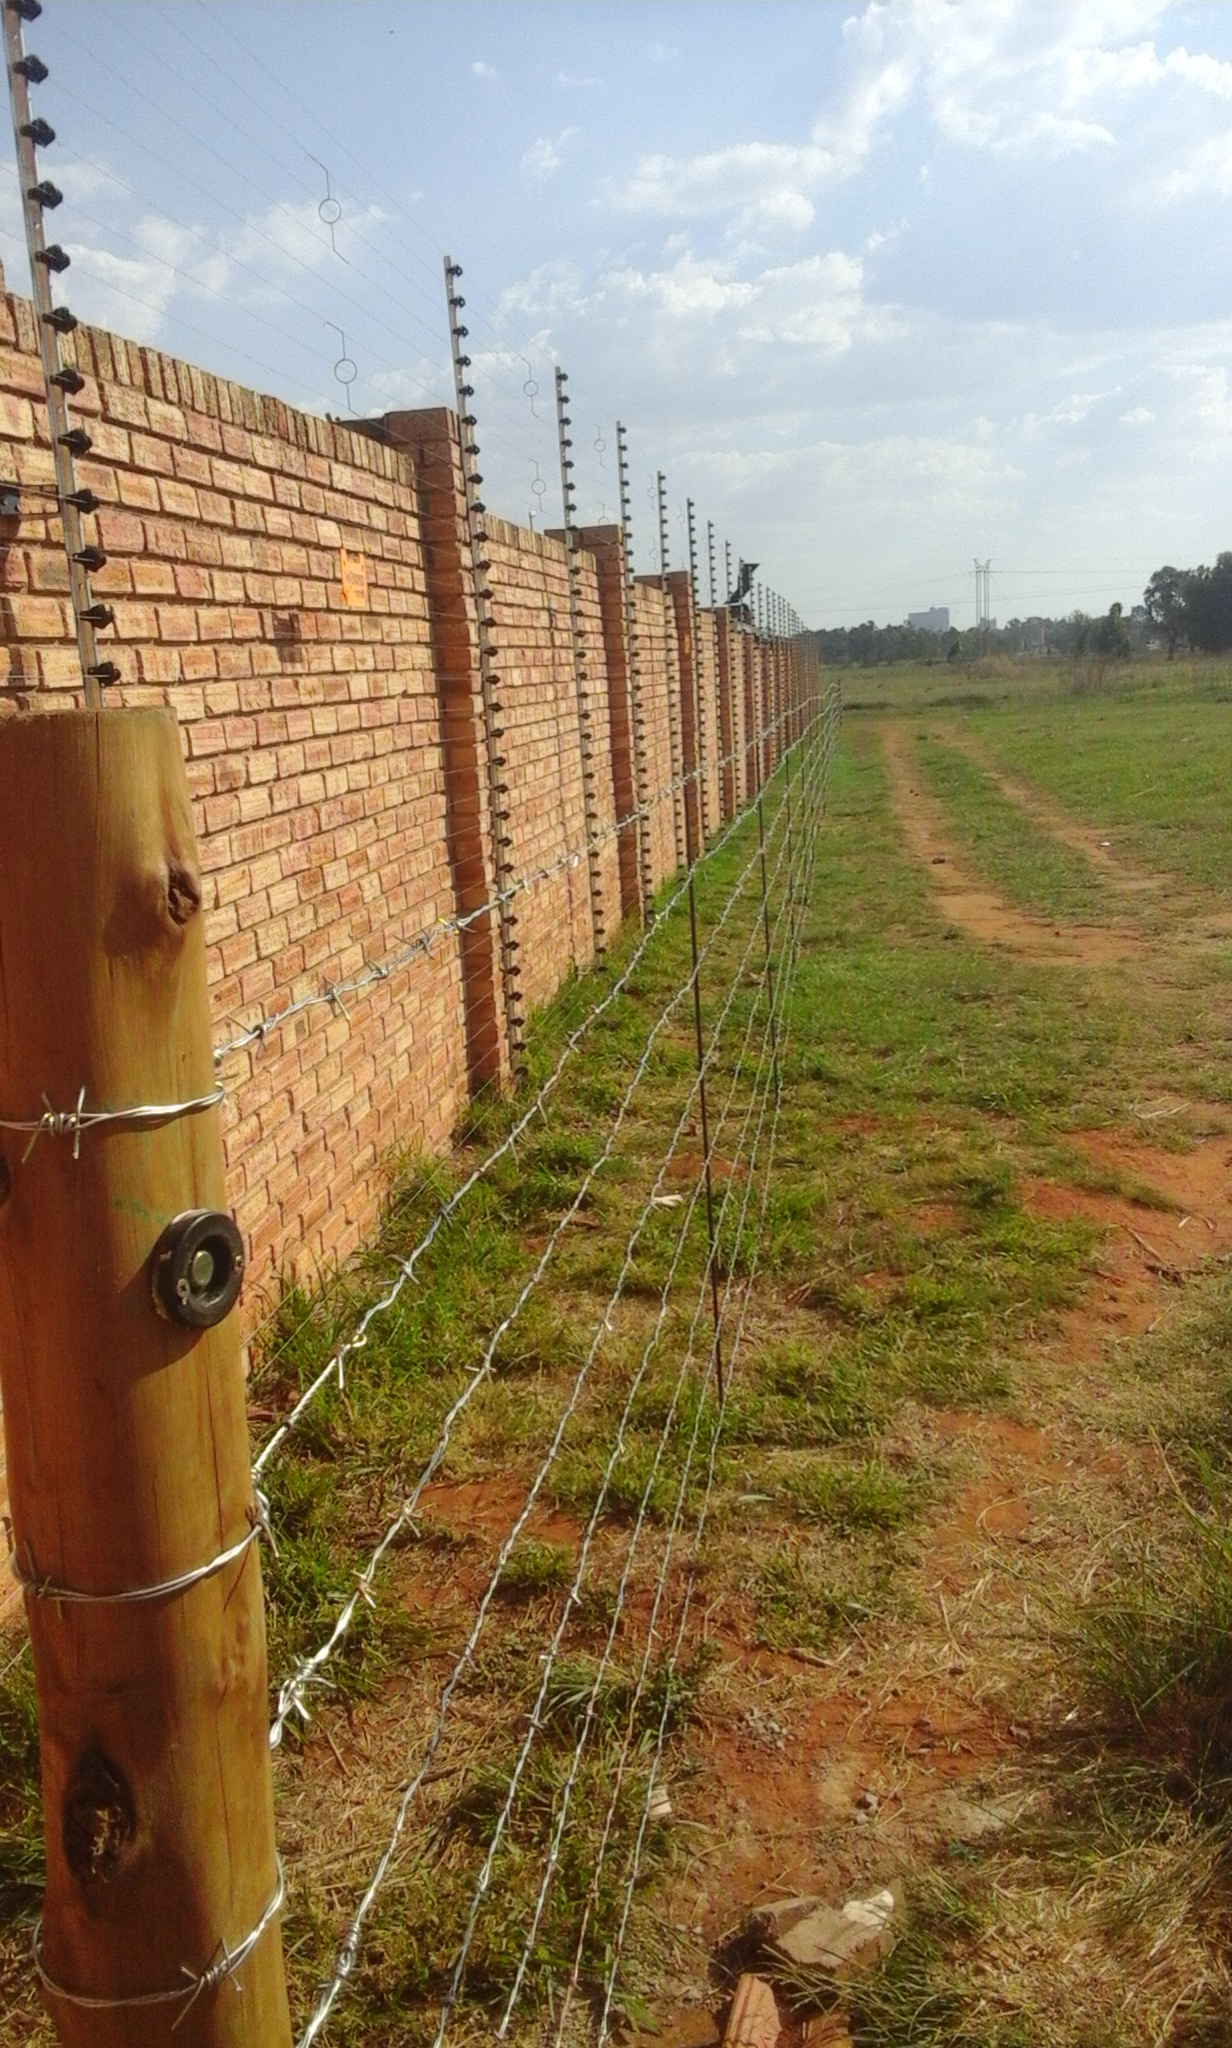 Electric Fence Installations at 2017 Prices